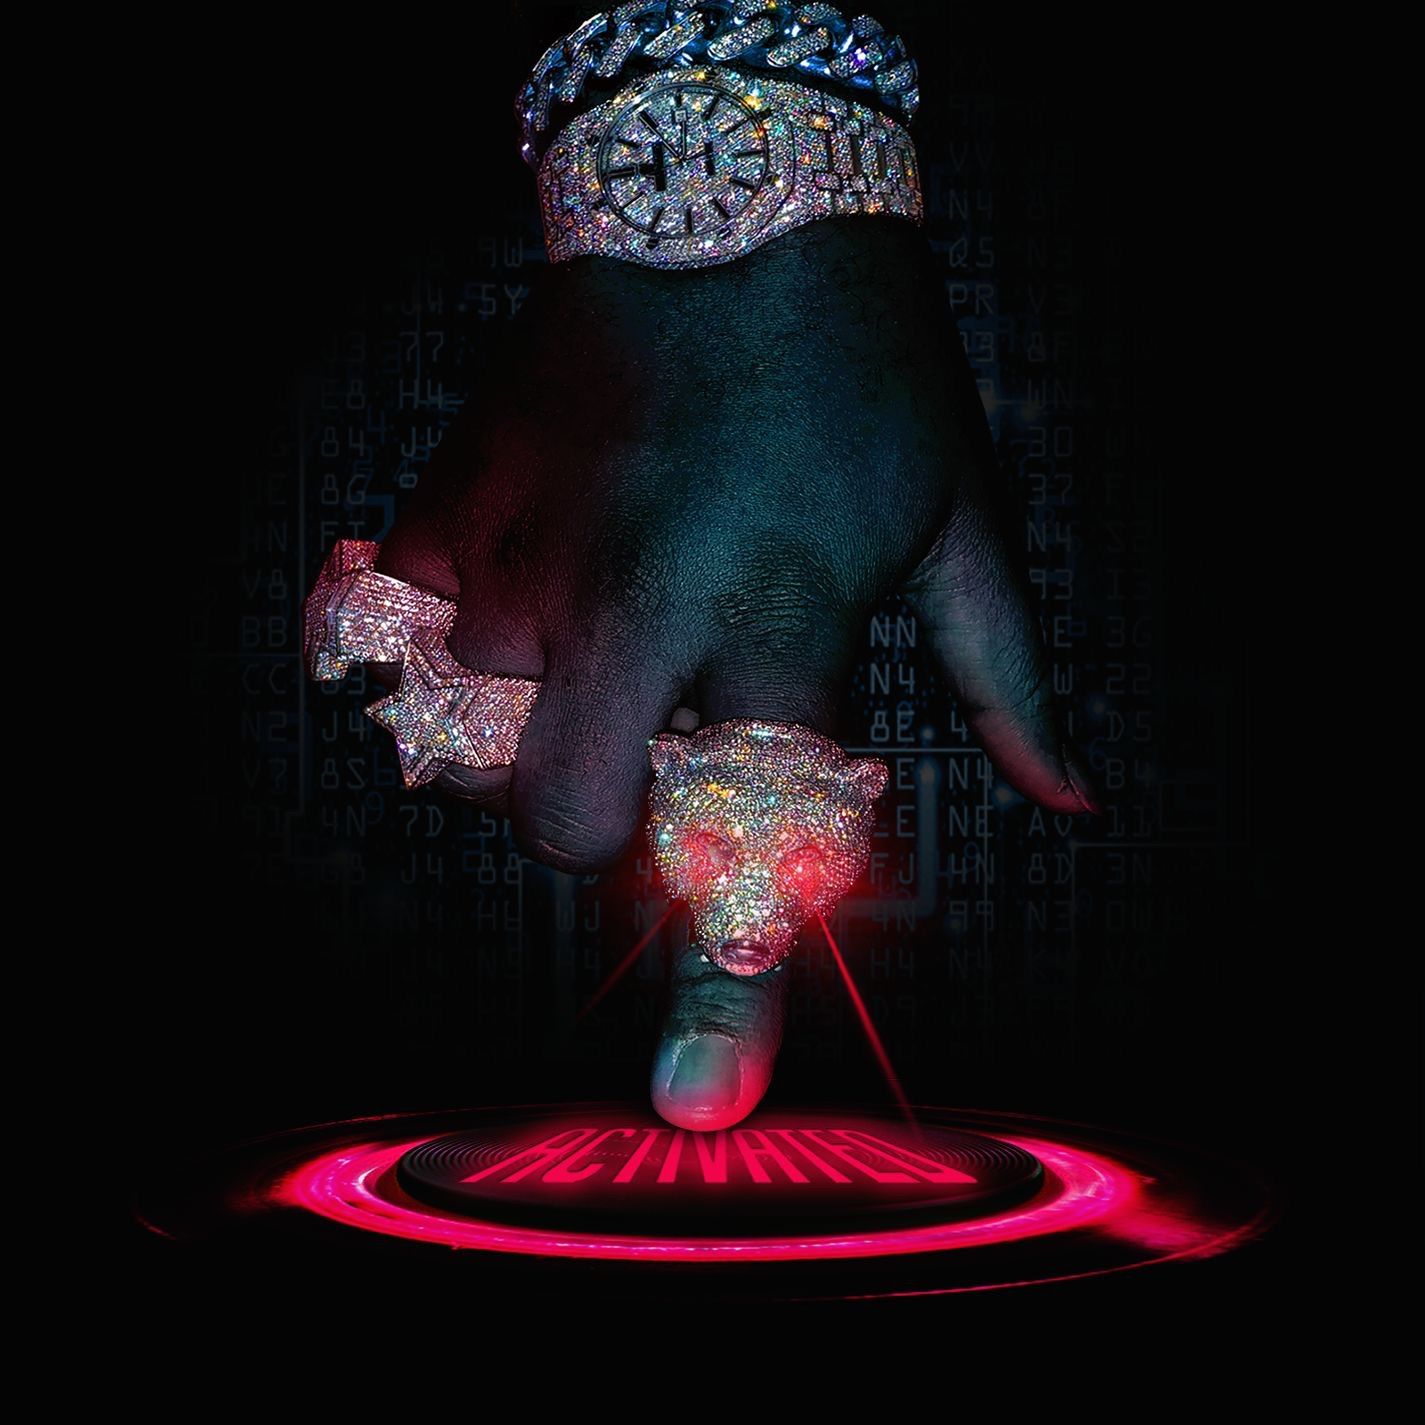 2 Vaults (feat. Lil Yachty) by Tee Grizzley